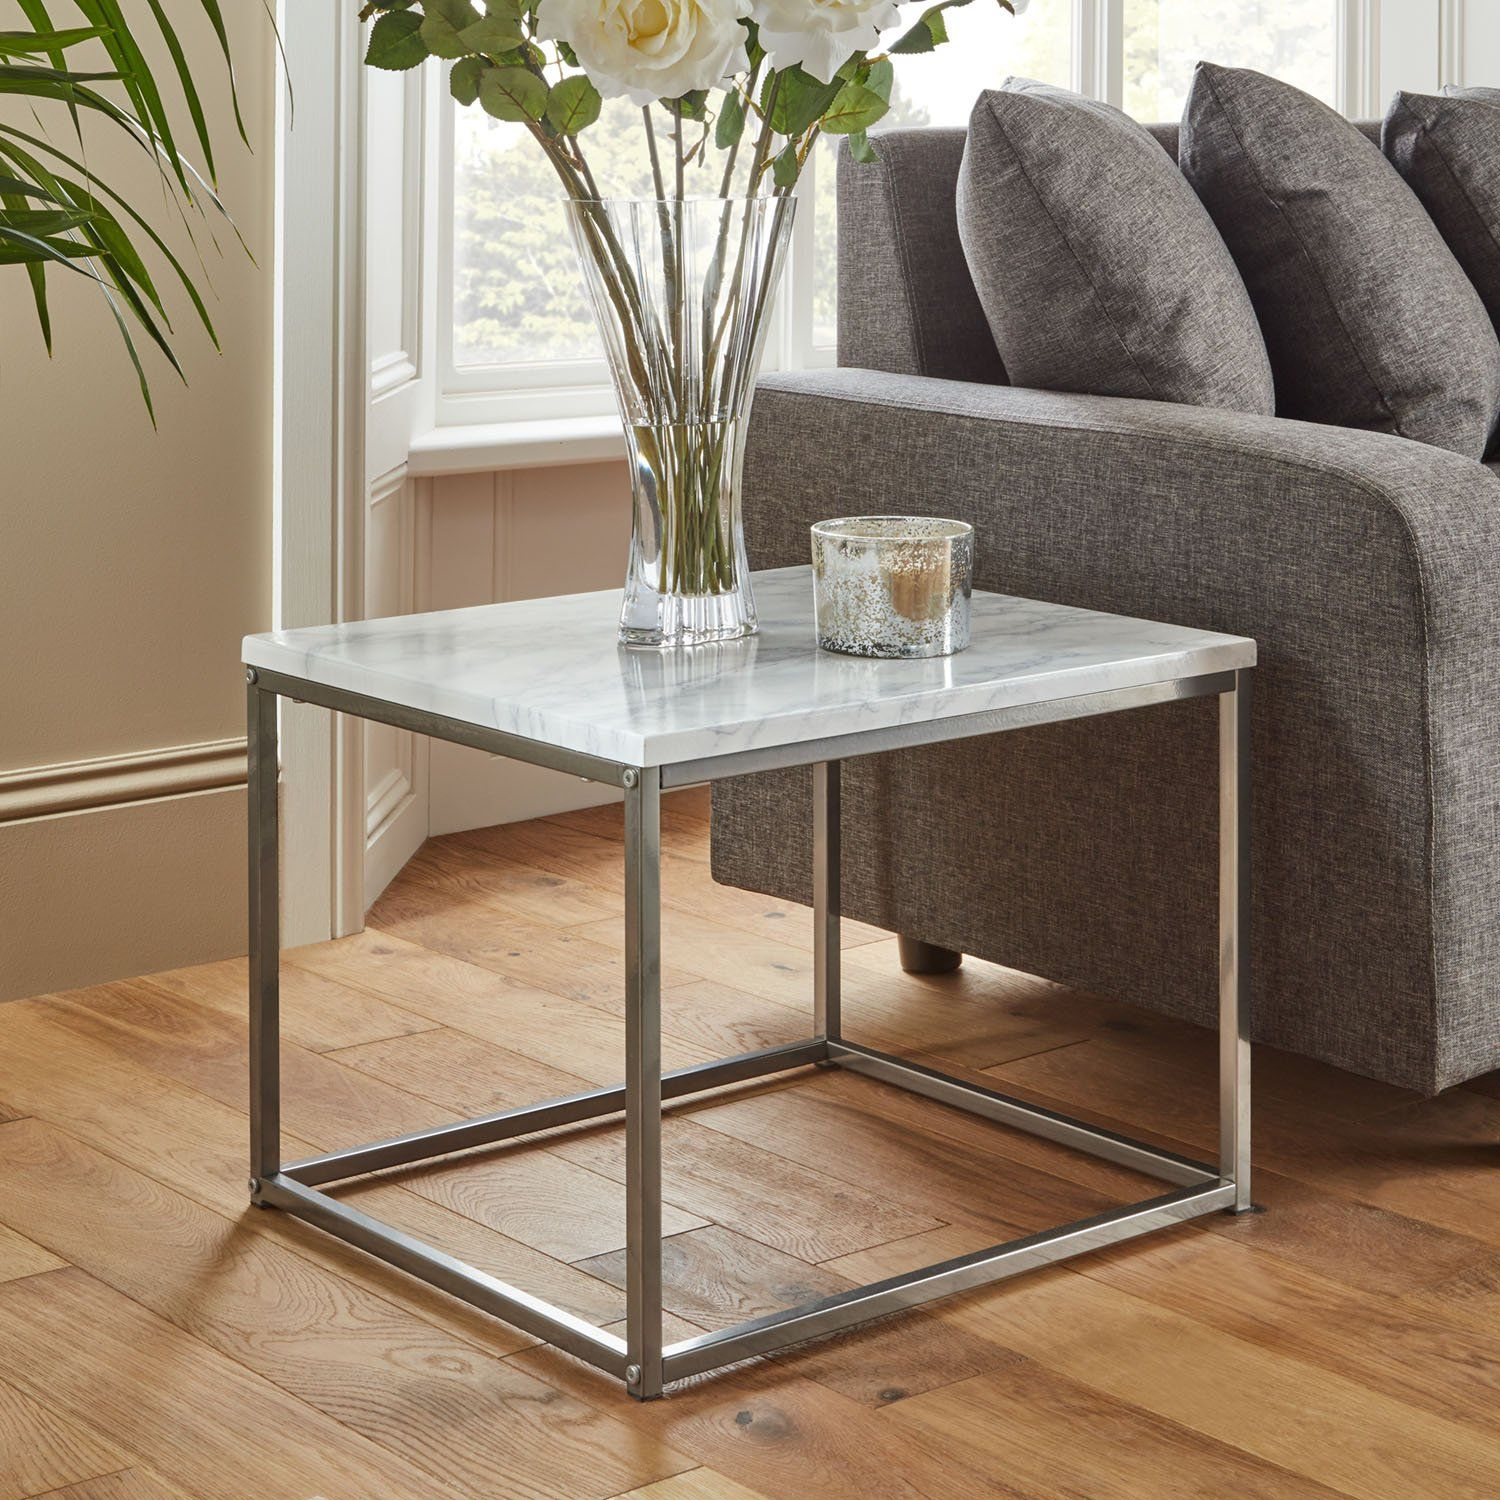 Jay side table - marble effect and chrome - Laura James